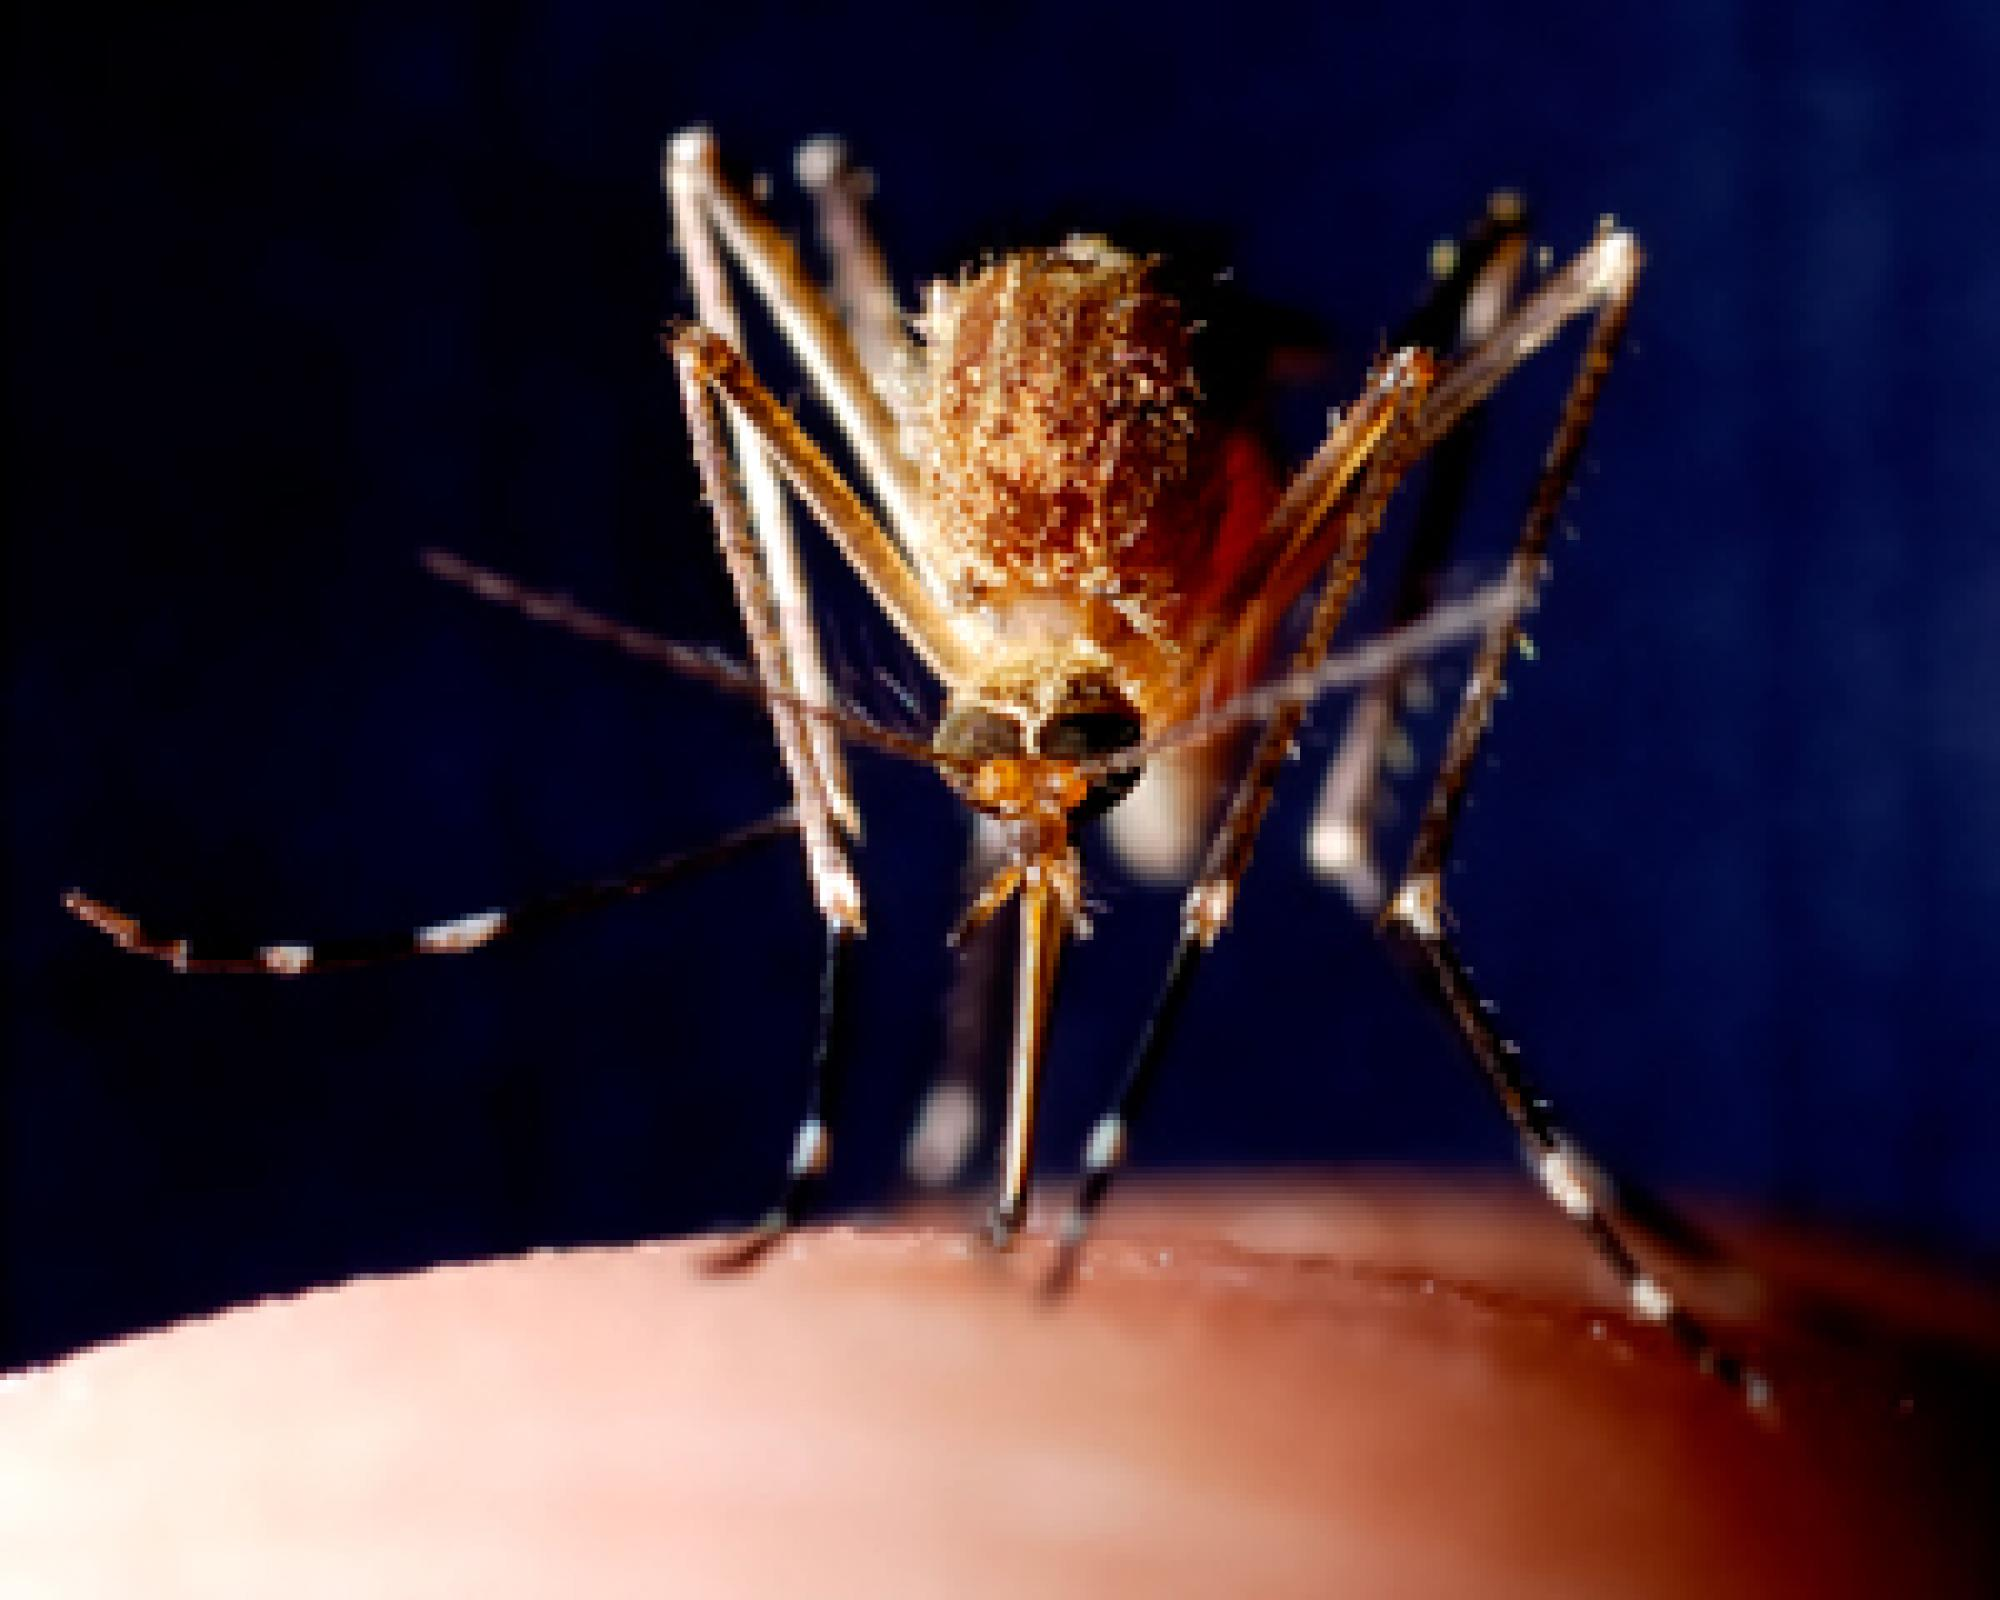 A team of UA researchers will gather data from sampling mosquito populations and also use surveys and high resolution urban-scale modeling, among other resources, to improve what is known about the ecological mosquito system. The team intend to develop ma